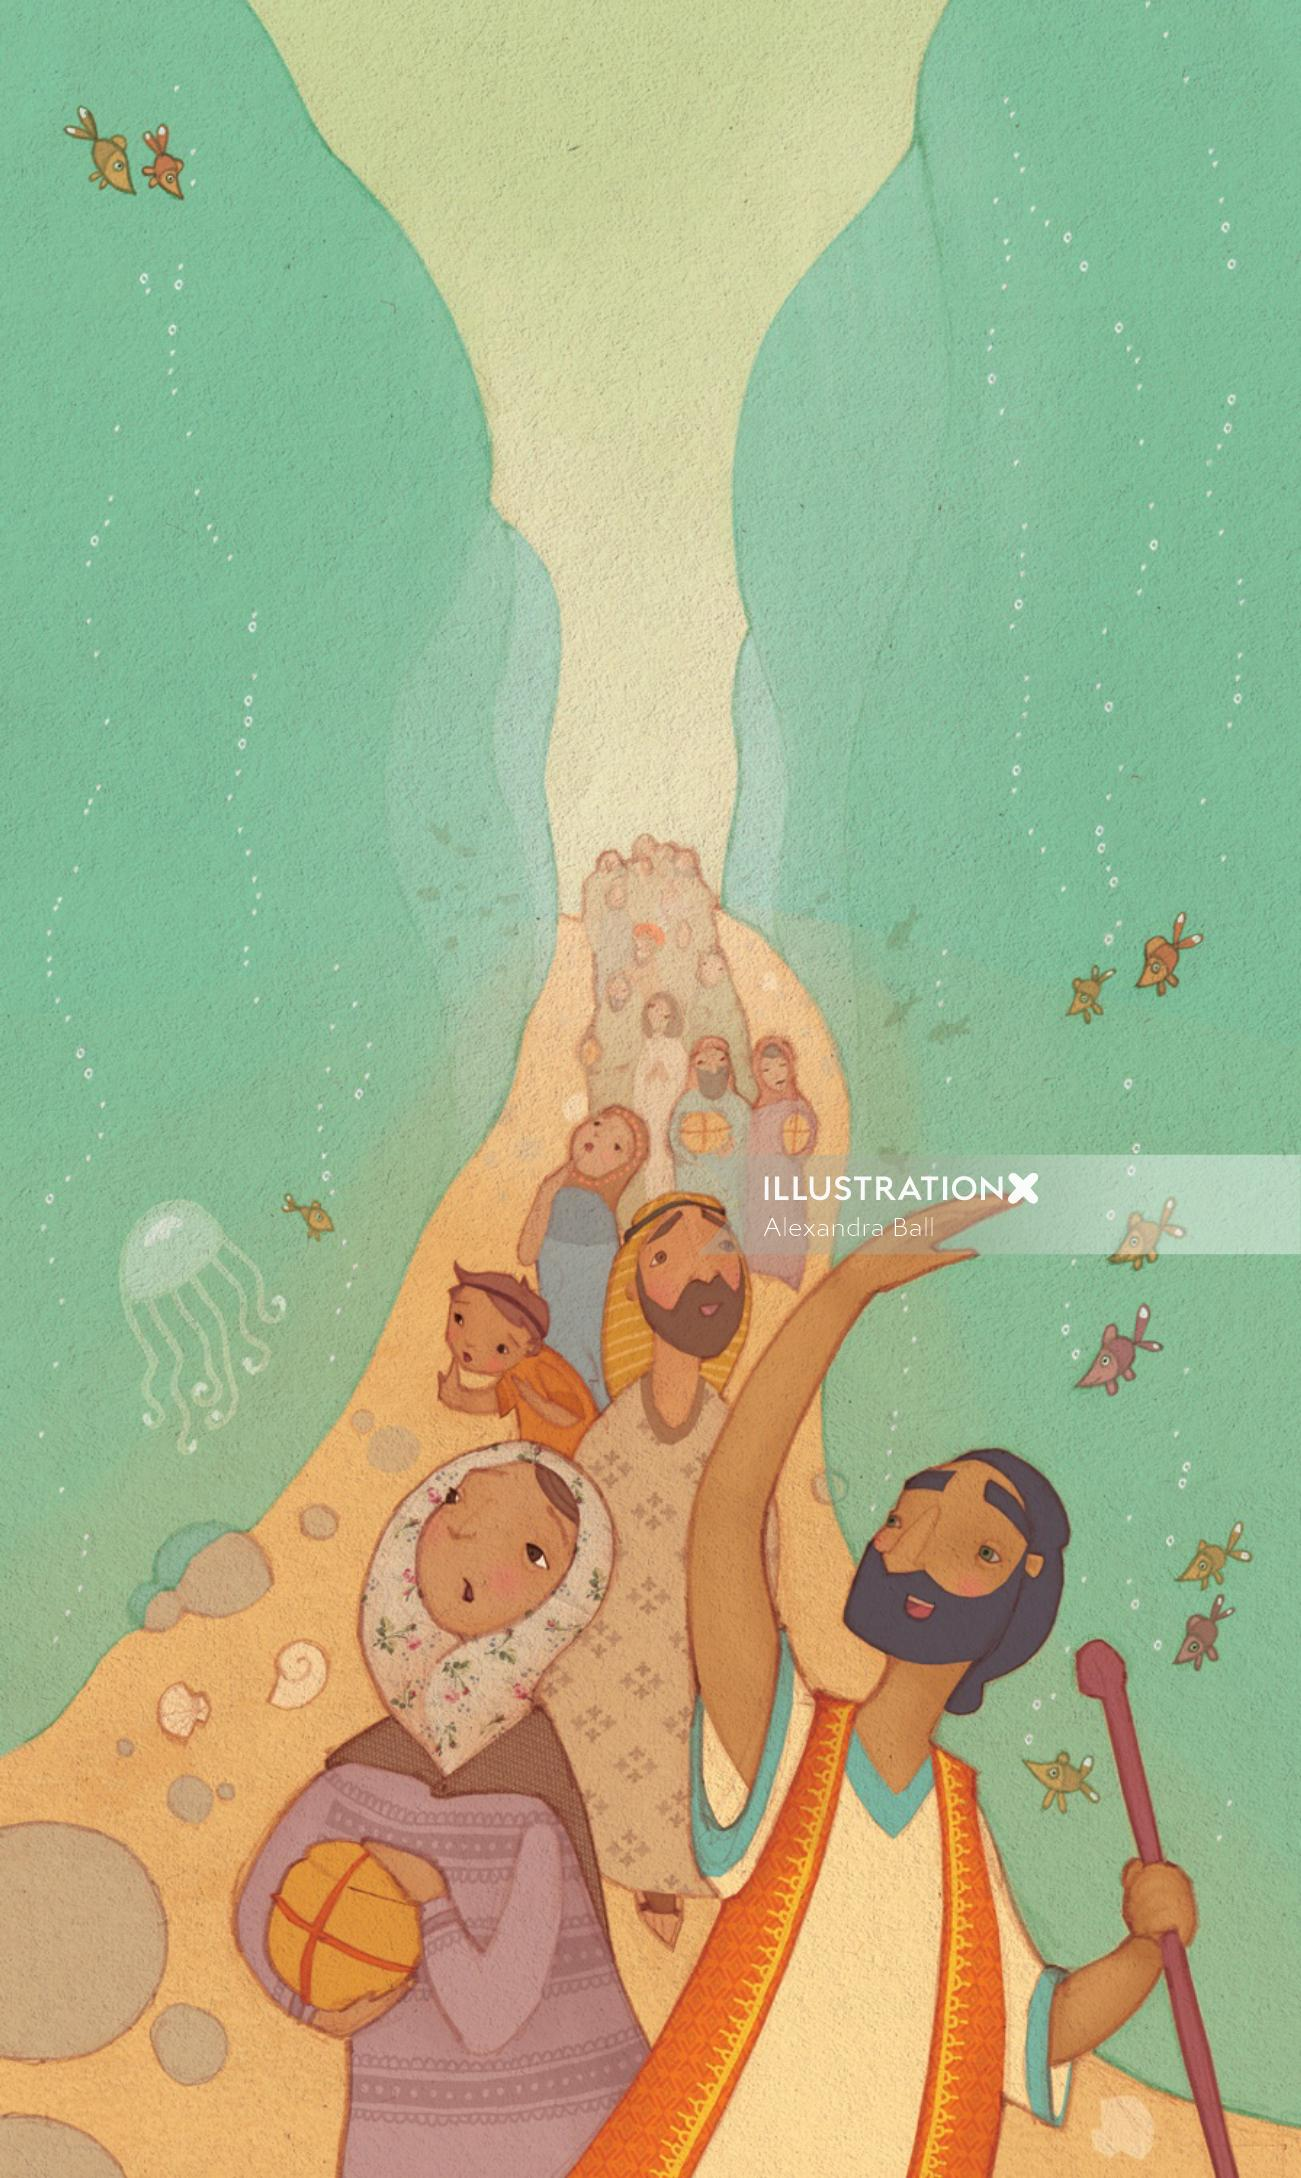 An illustration of Moses parting the red sea